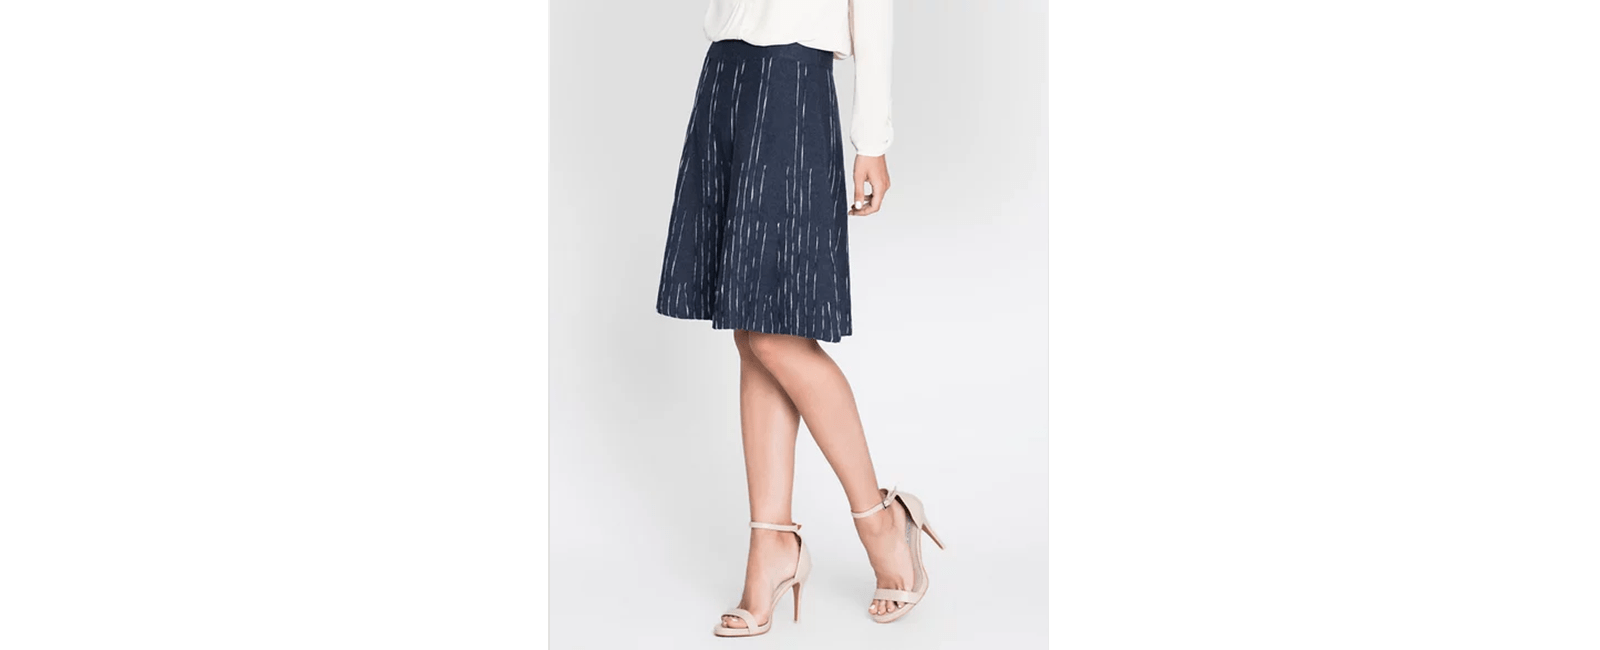 clothing-skirt